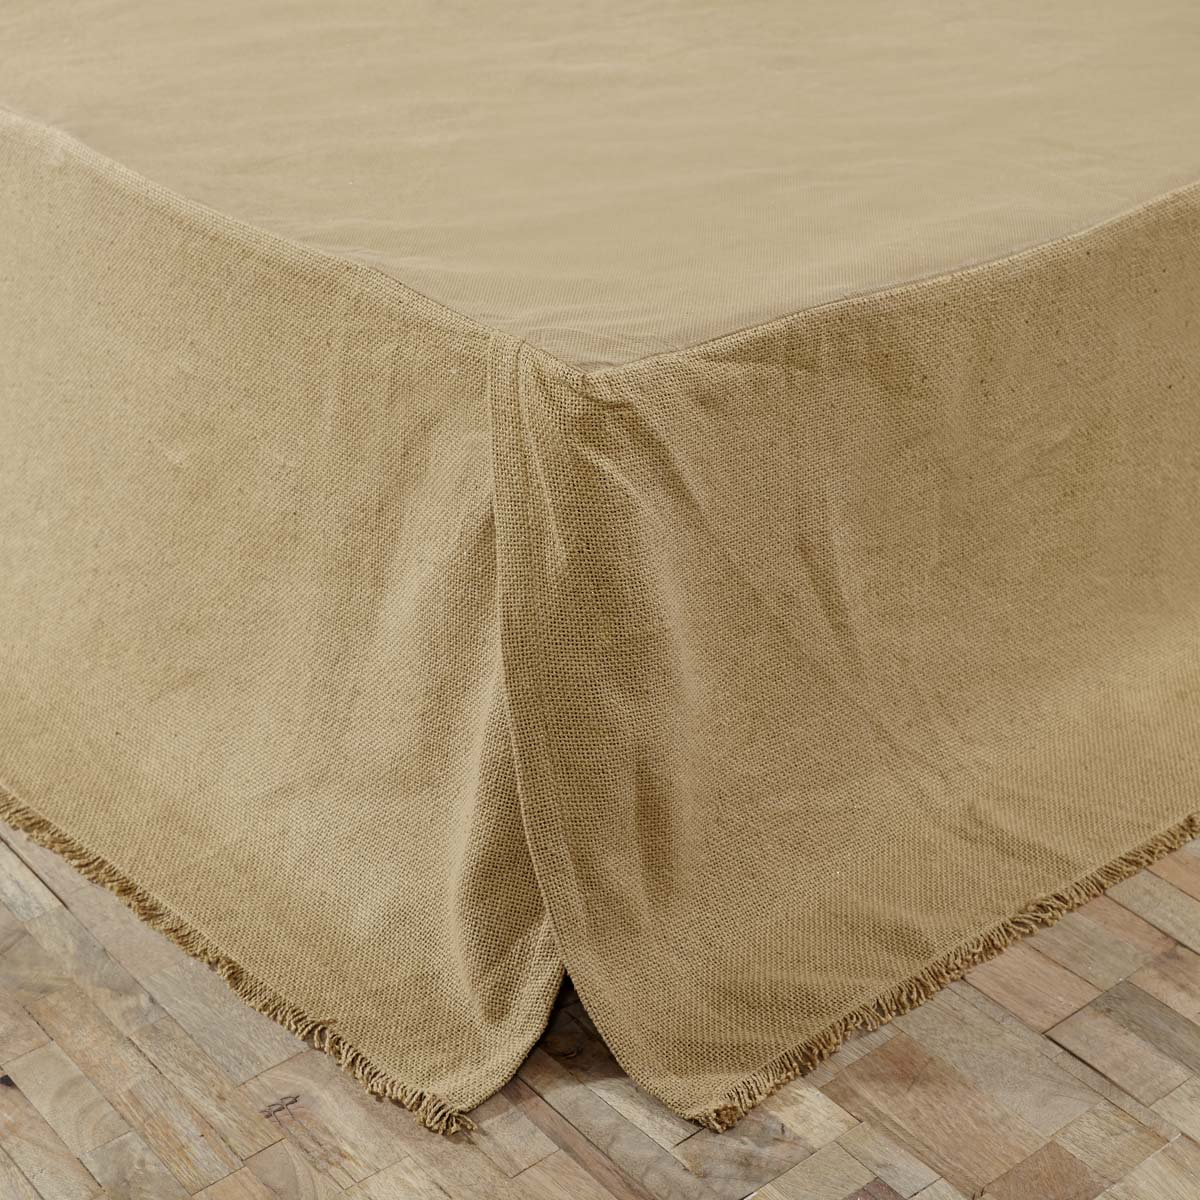 Burlap Natural Fringed Twin Bed Skirt 39x76x16 - Woodrol